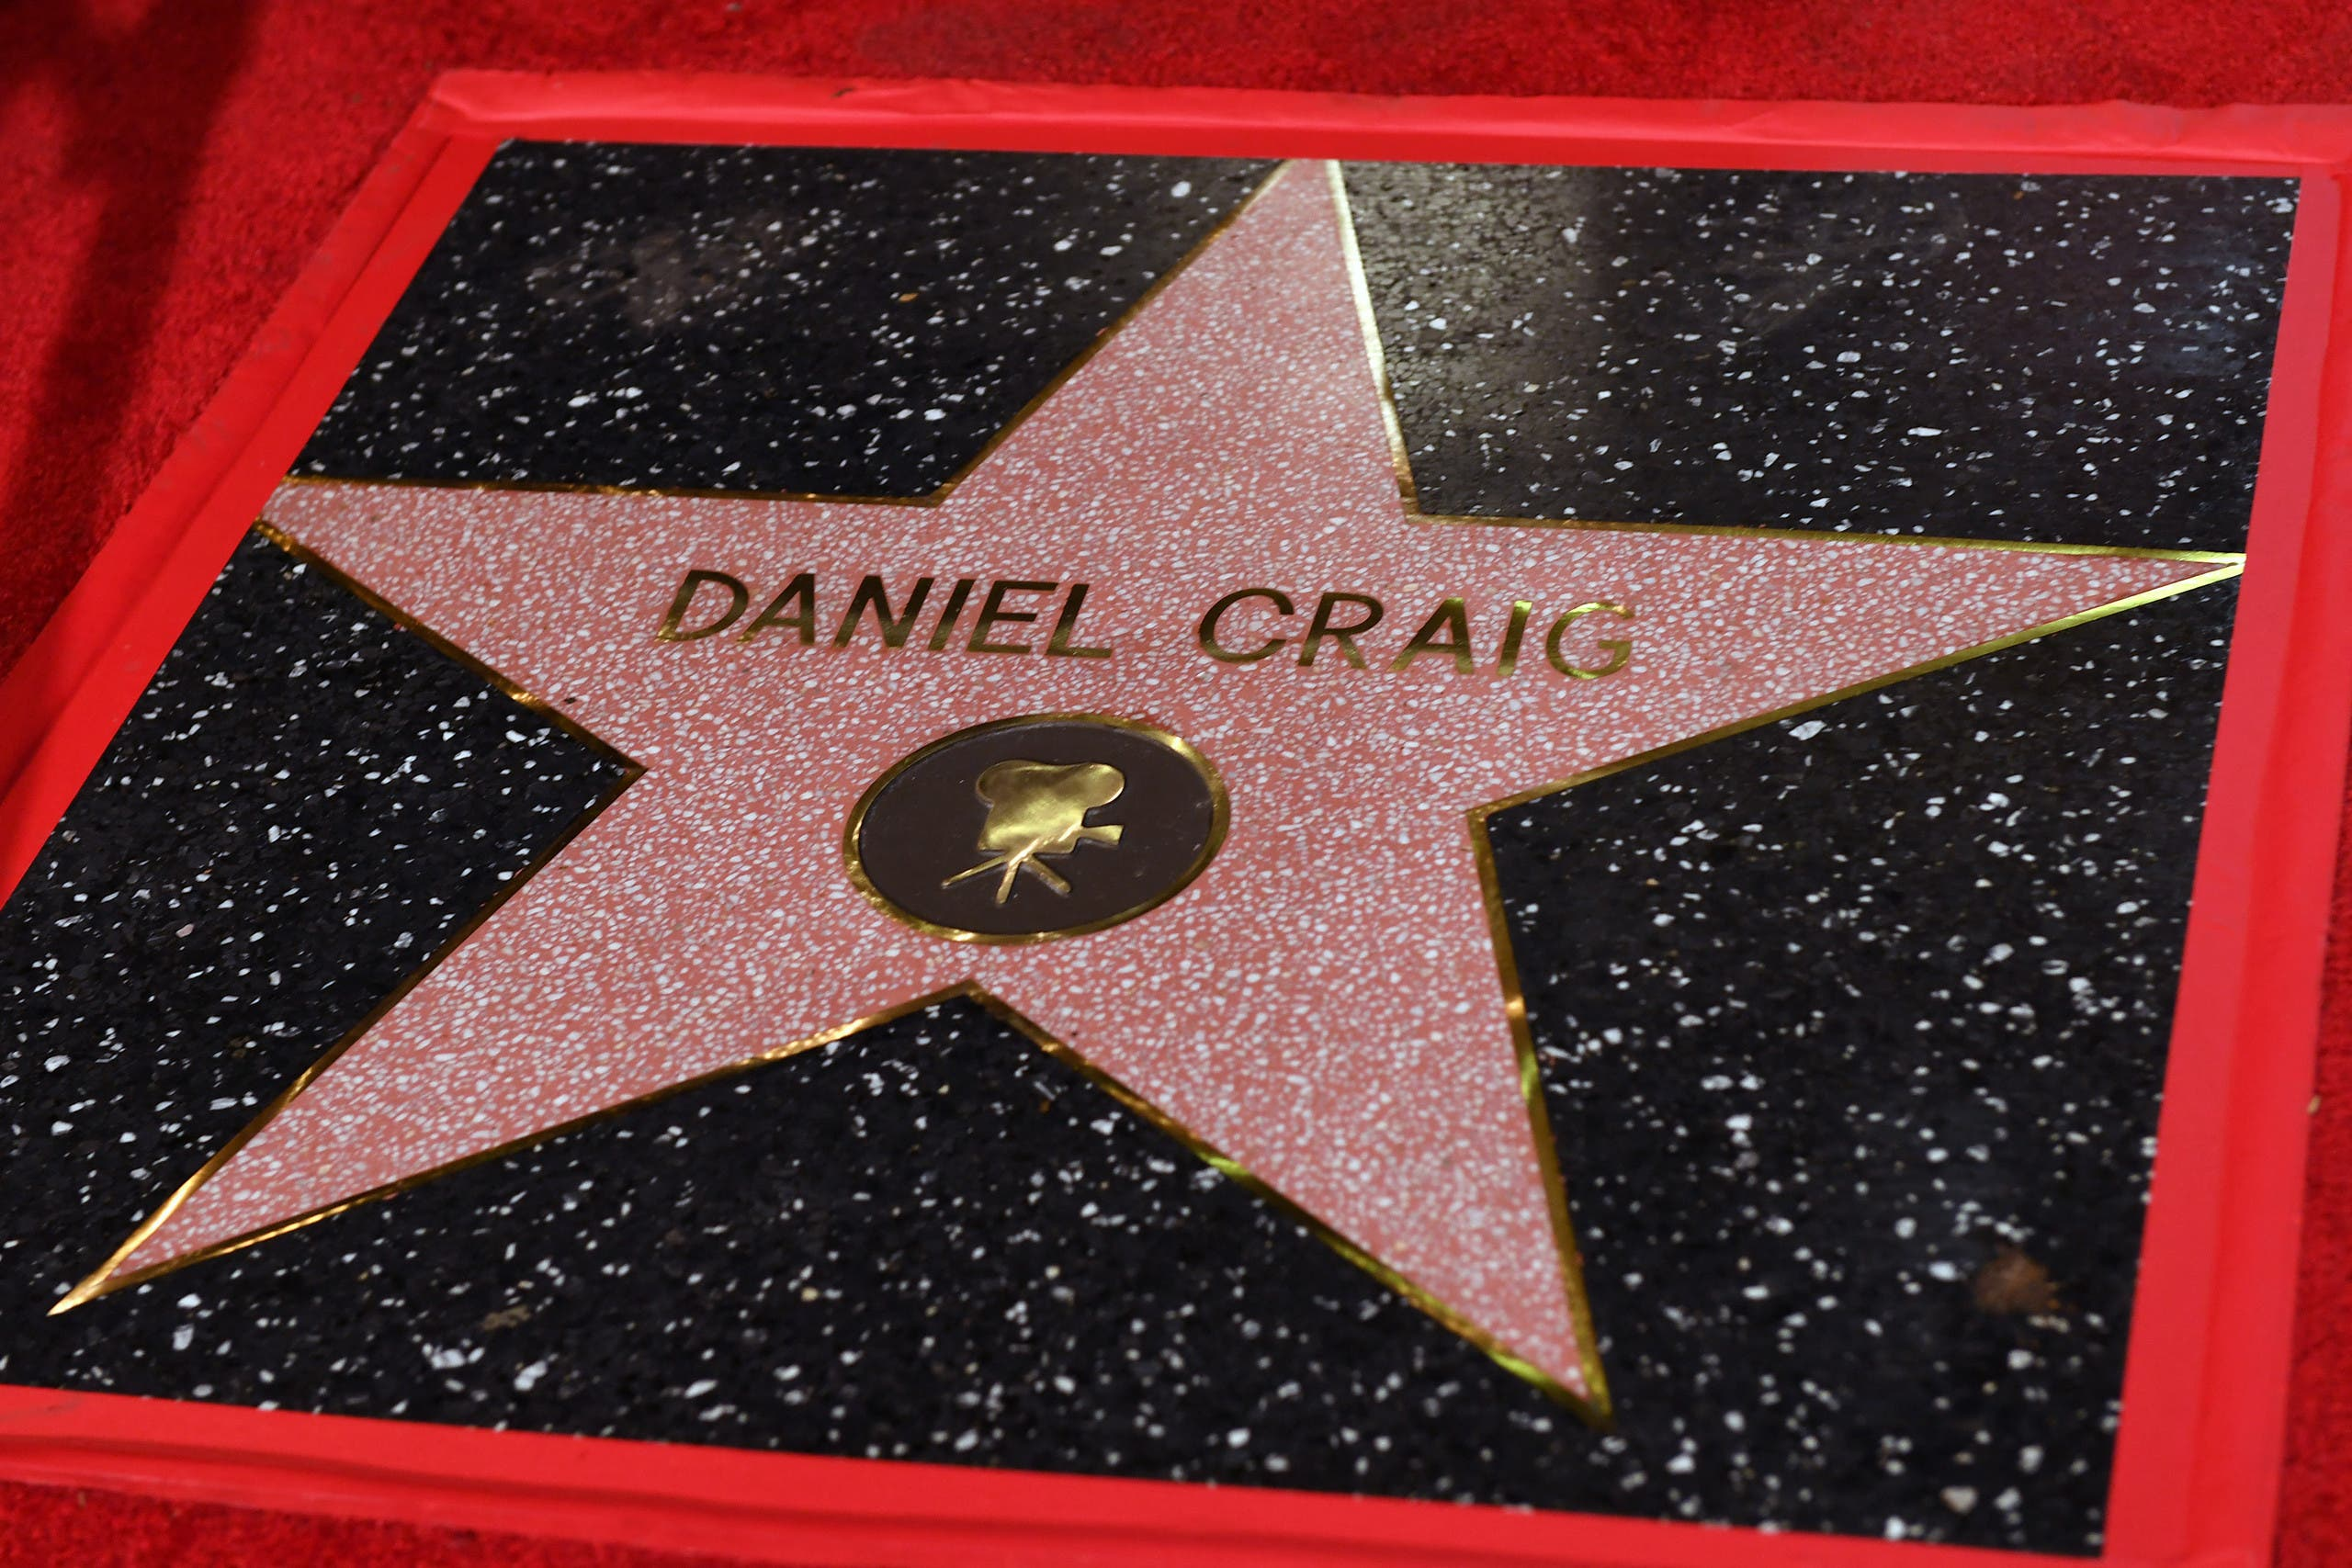 British actor Daniel Craig is honored with a star on the Hollywood Walk of Fame in Los Angeles, California, on October 6, 2021. Craig's star will be located at 7007 Hollywood Boulevard, chosen for Craig's portrayal of James Bond in '007' films. (AFP)